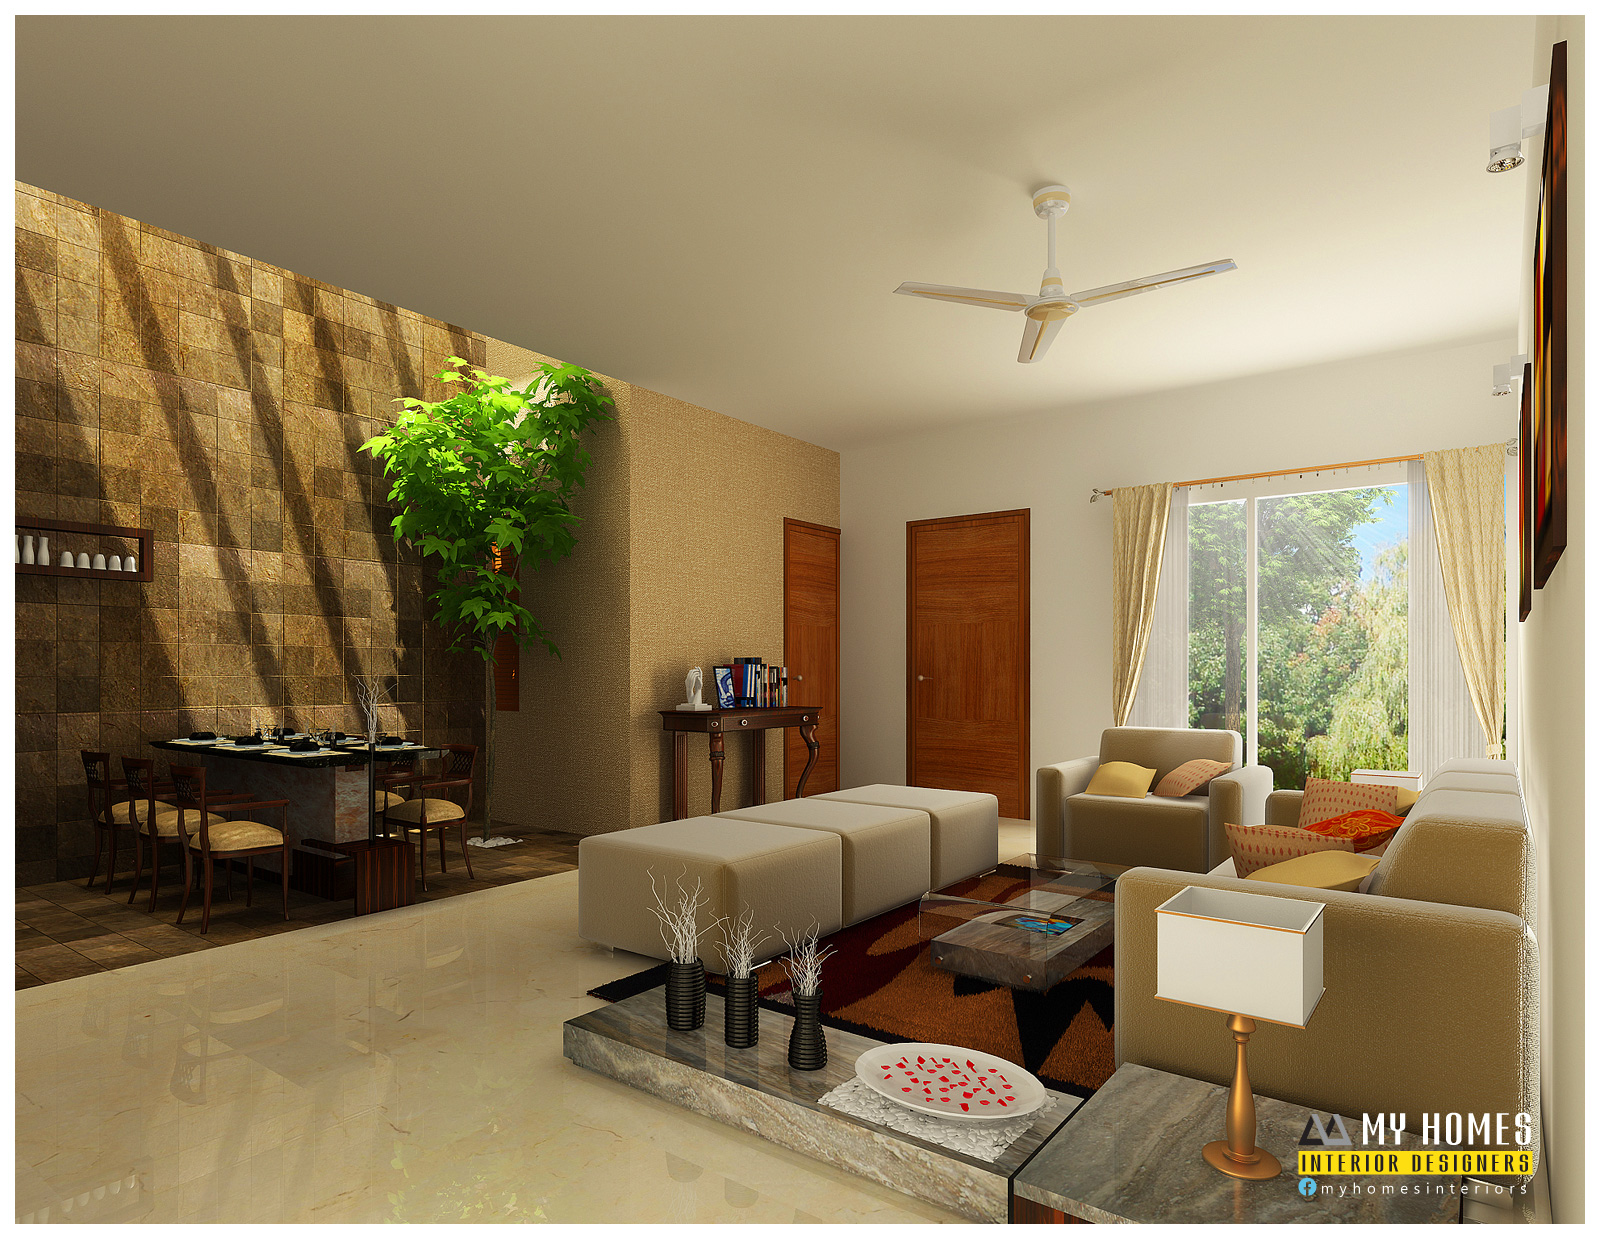 kerala interior design ideas from designing company thrissur home design awesome interior decoration ideas kerala home